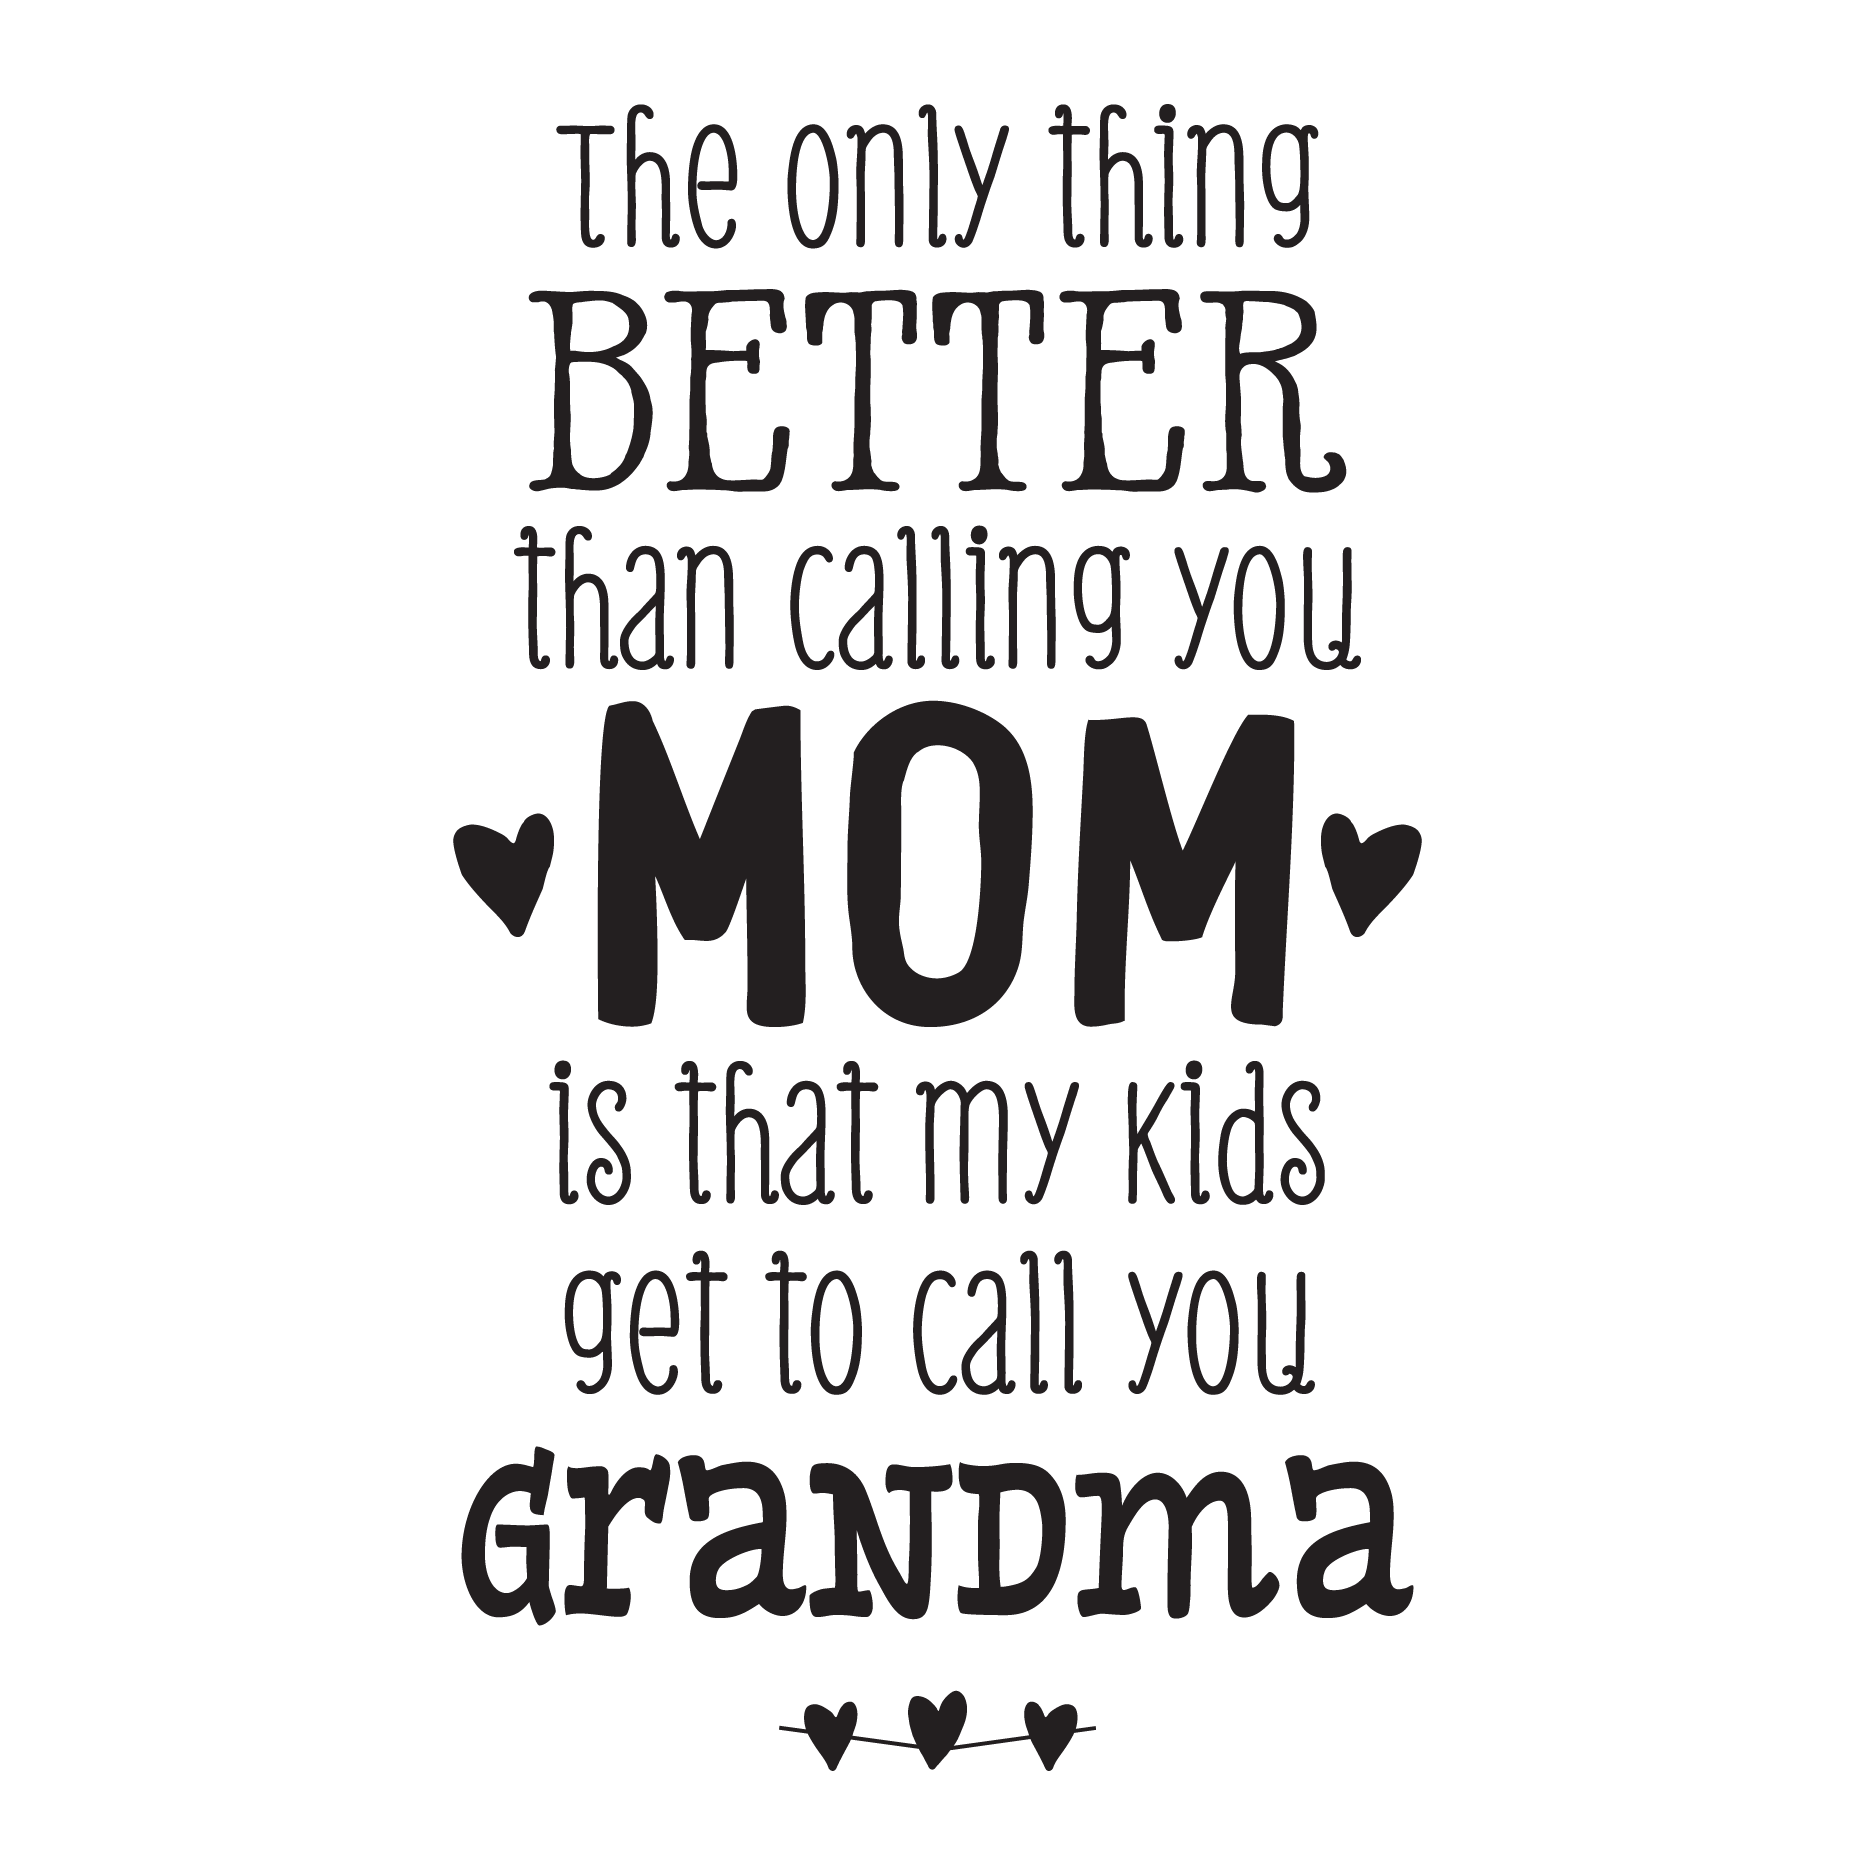 My Kids Call You Grandma Wall Quotes Decal on Funny Happy Birthday Cards